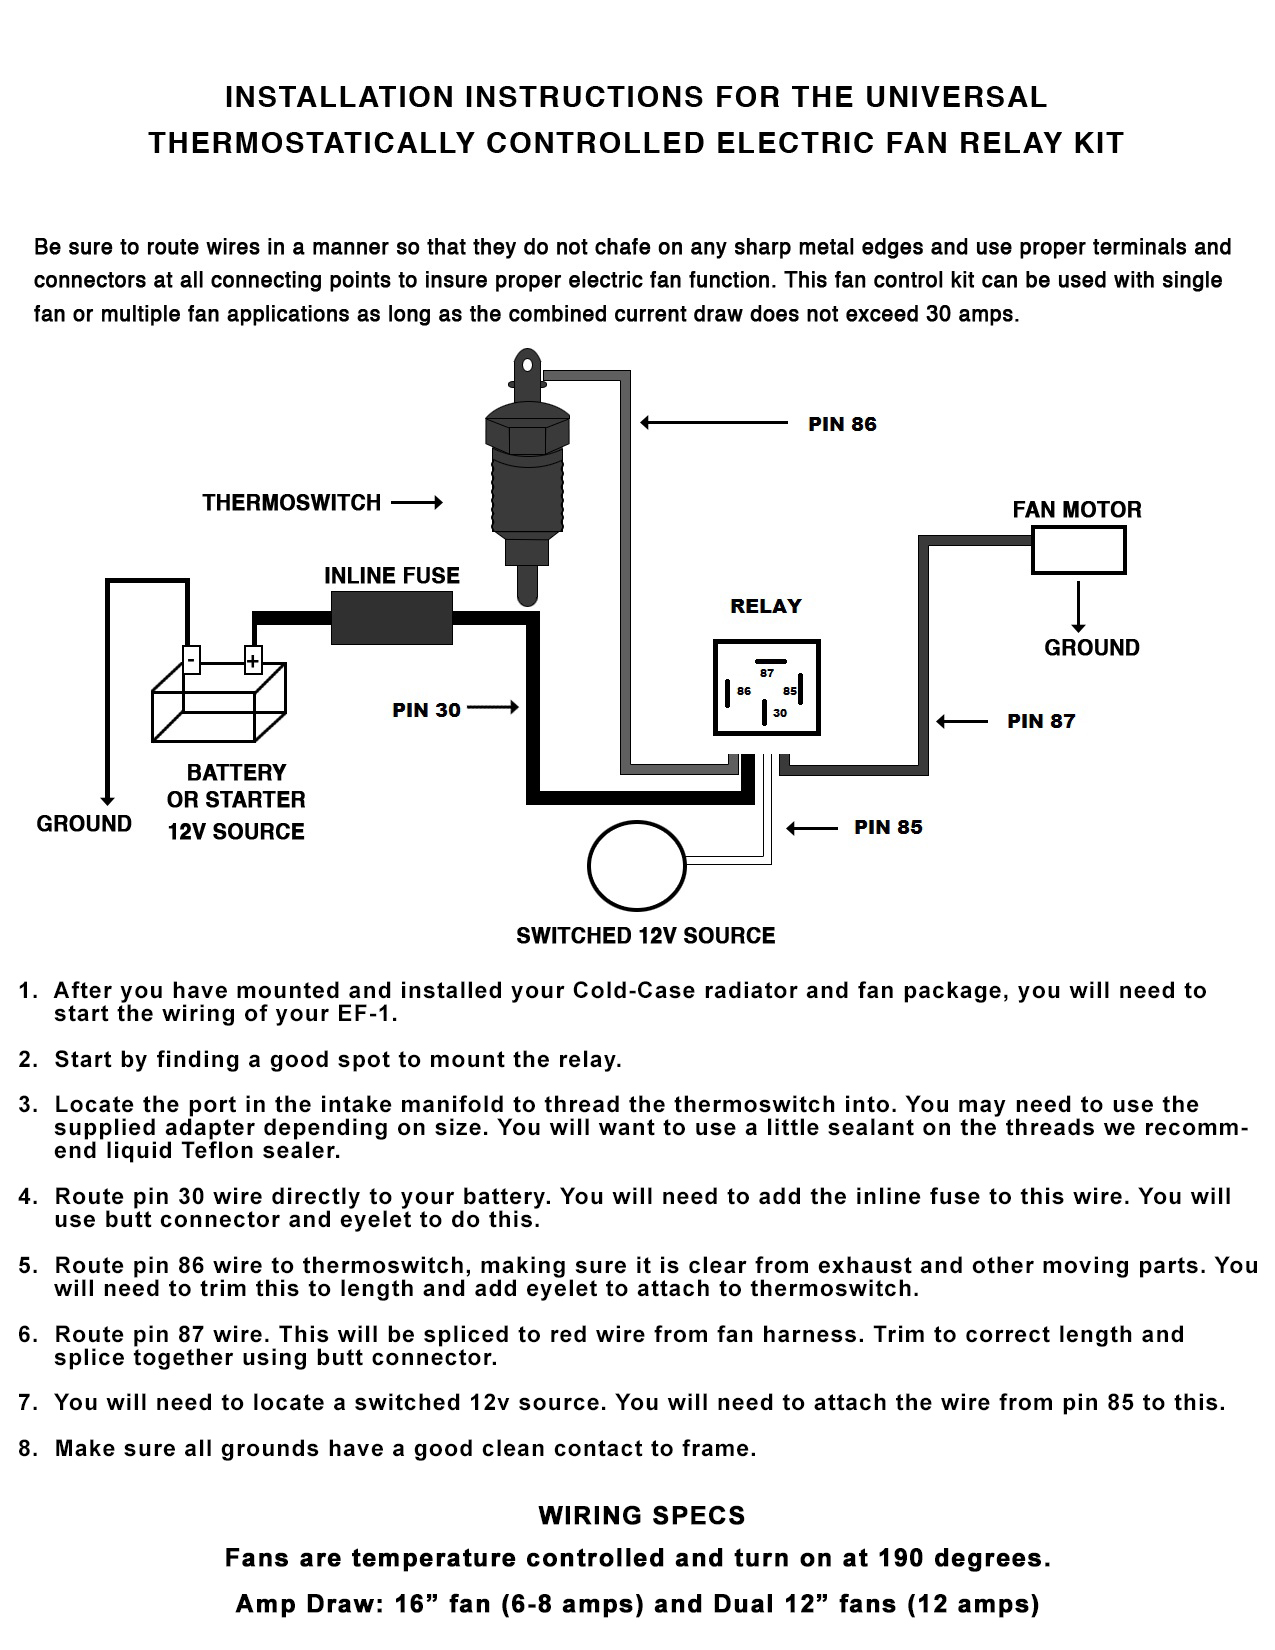 Well Pontiac Bonneville Parts Diagram Free Image About Wiring Diagram